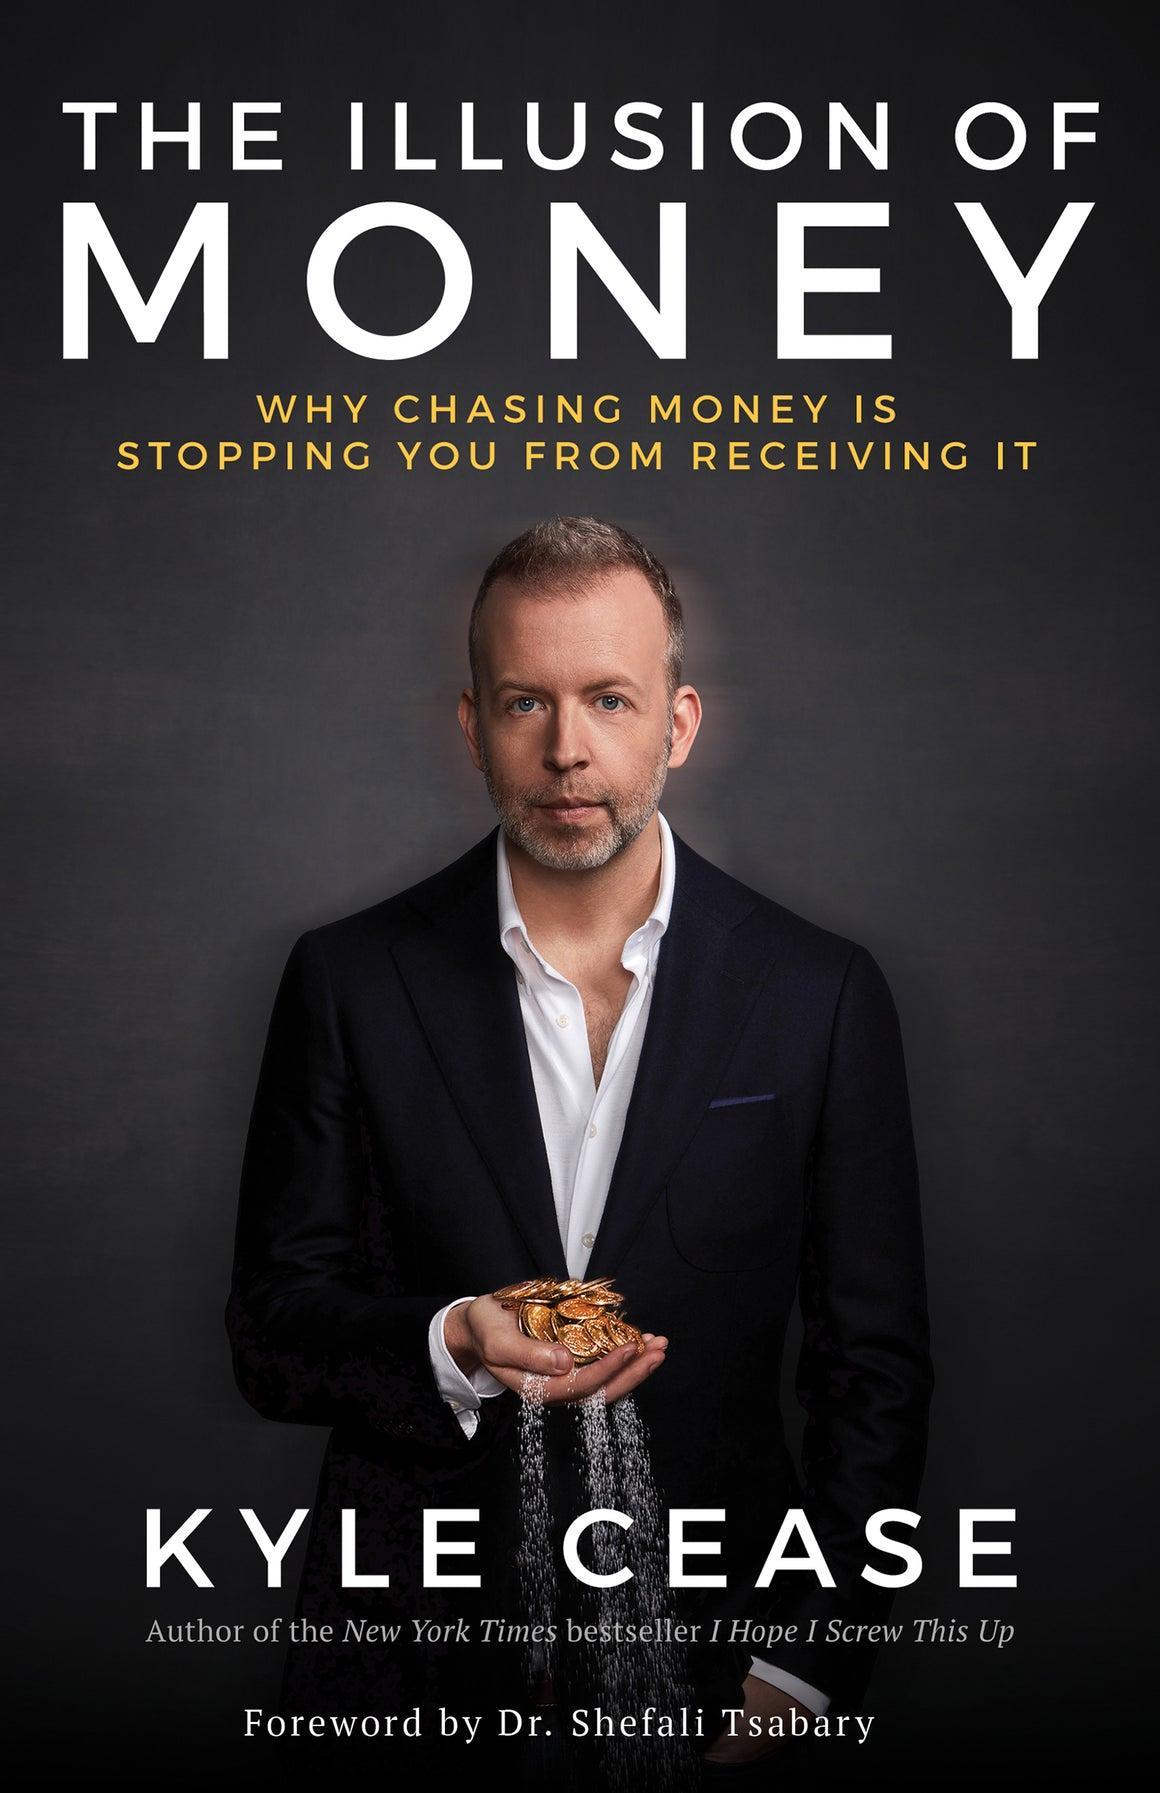 September 03, 2019 - Tuesday 7:30-9:30pm - The Illusion of Money - with Kyle Cease